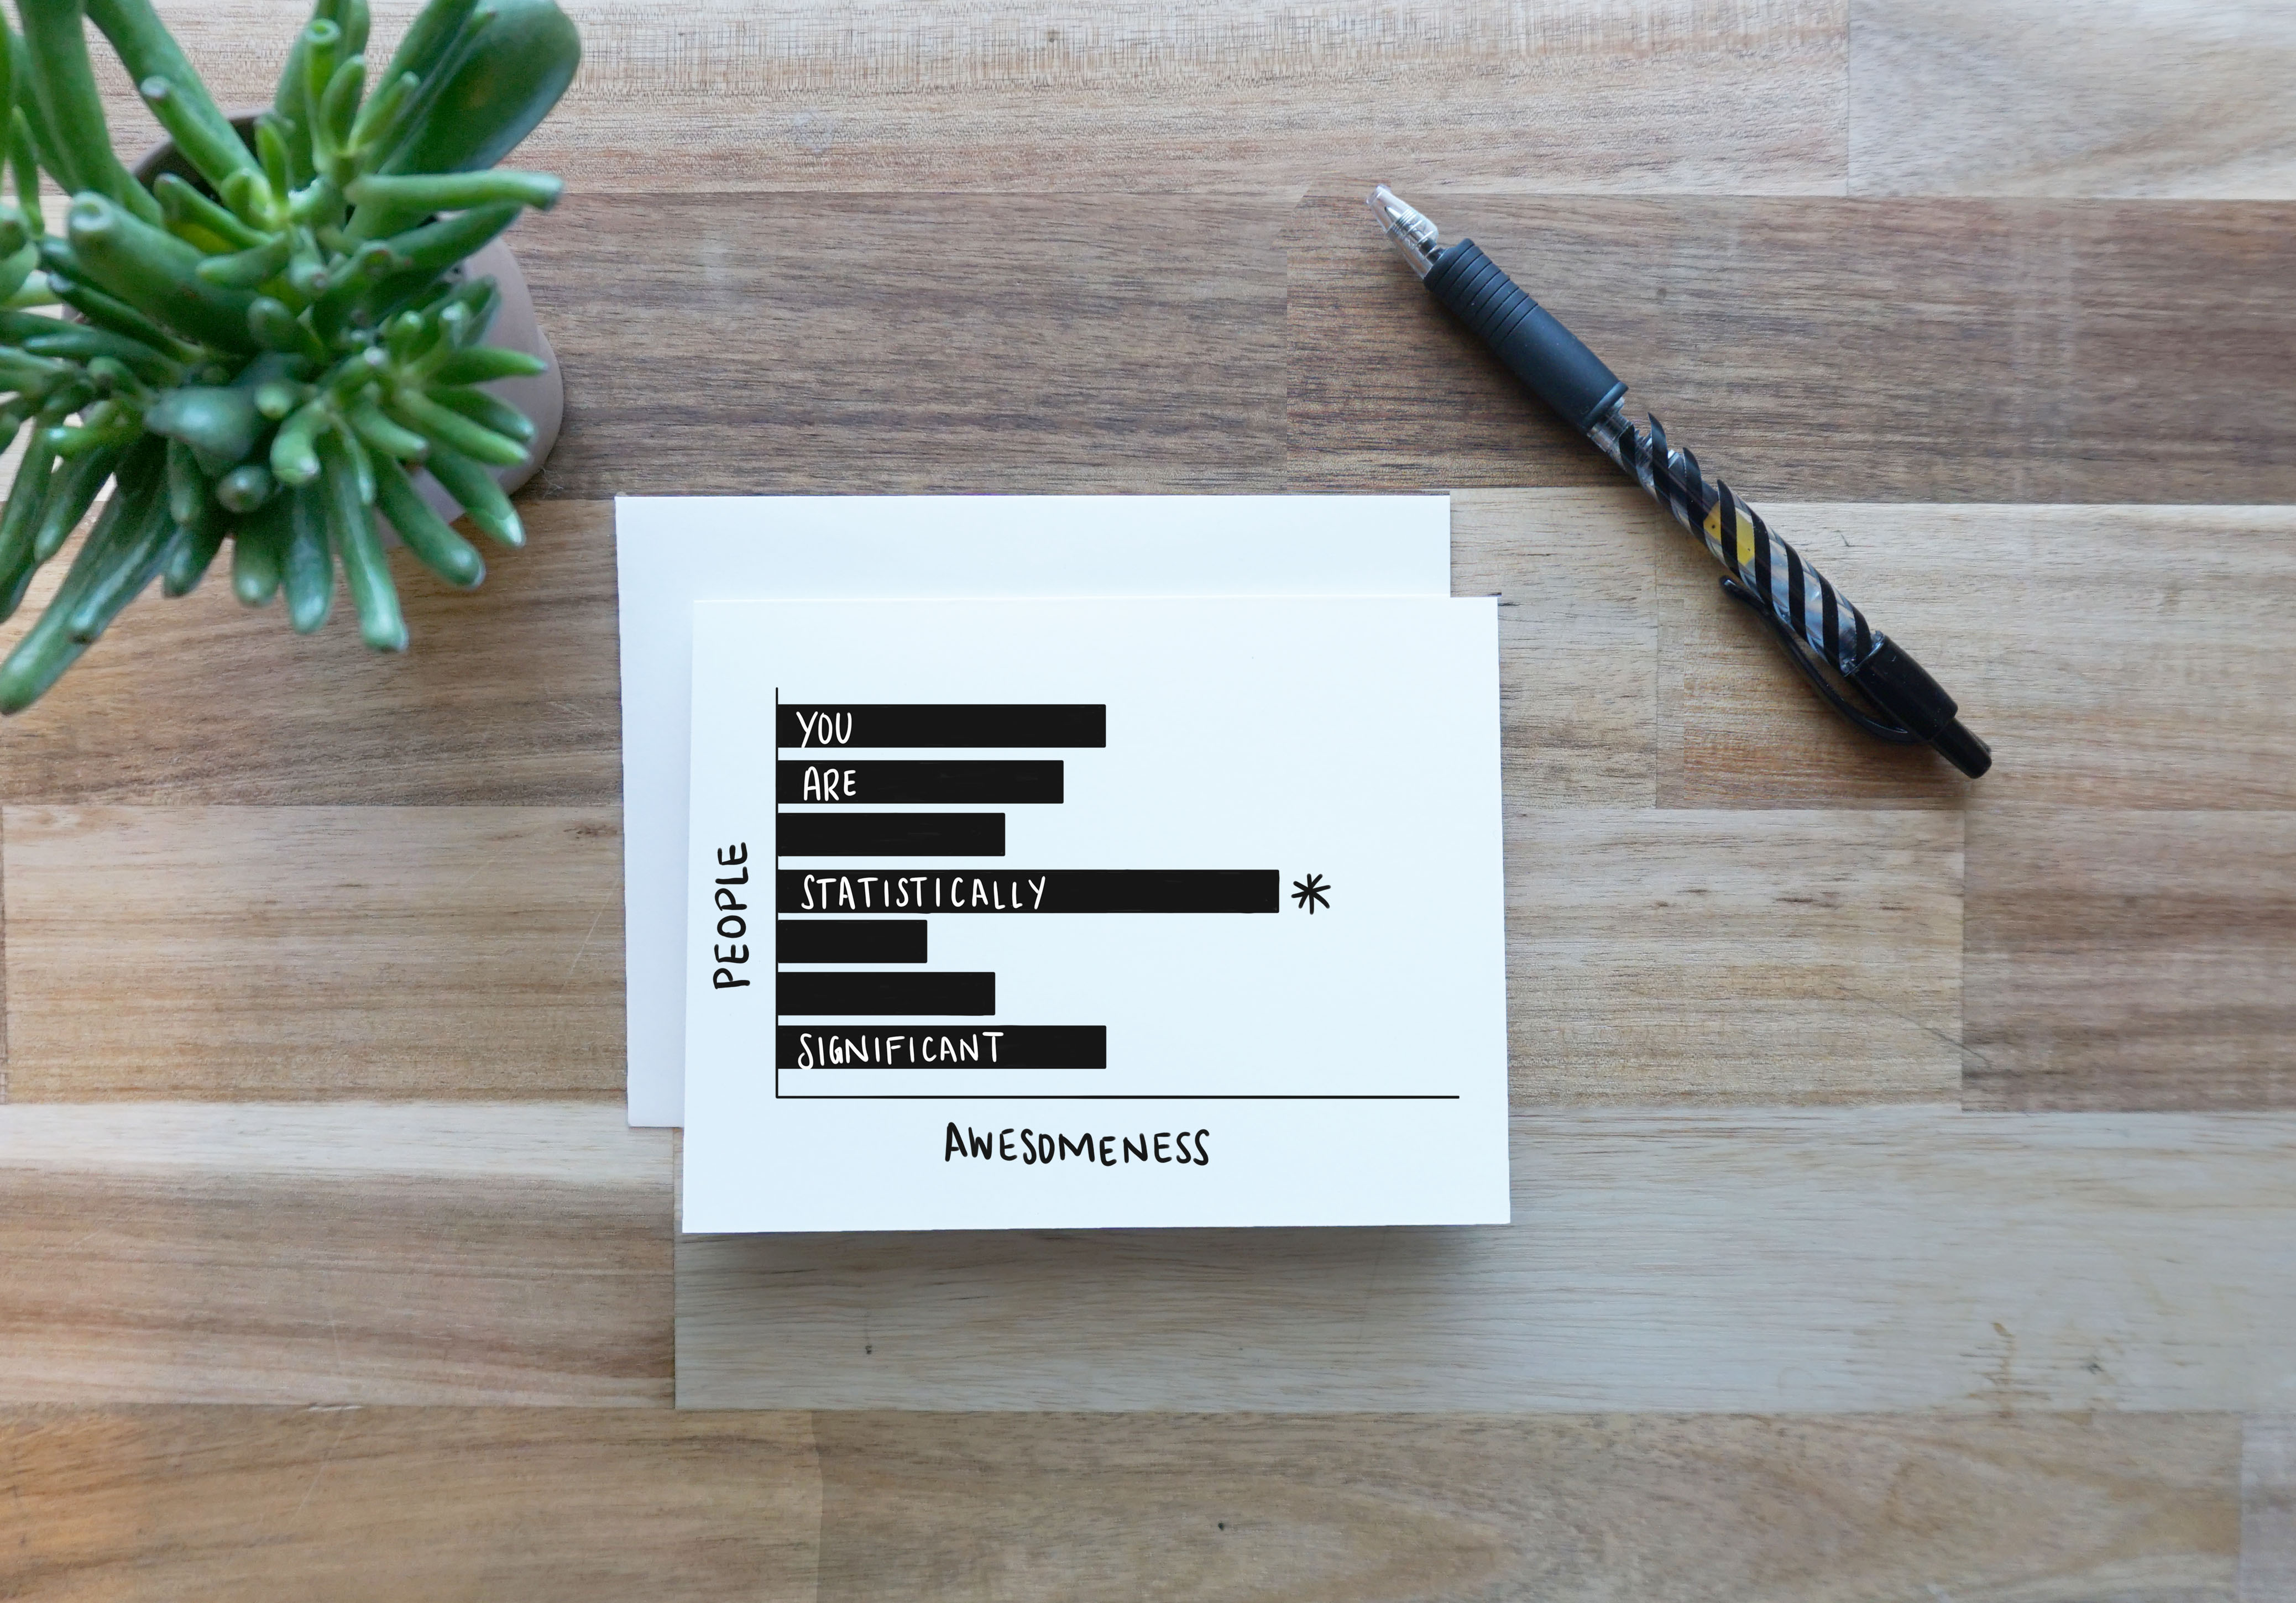 """A card sits on top of a wooden tabletop between a small succulent to the left and a black Pilot G2 pen on the right. The card, sitting atop a white envelope, shows a horizontal bar graph with an x-axis labeled """"Awesomeness"""" and a y-axis labeled """"People."""" Seven bars extend to the right side of the card from their origin at the y-axis, with the words """"You are statistically significant"""" written in white all caps on the bars. The longest bar has an asterisk to the right of it."""